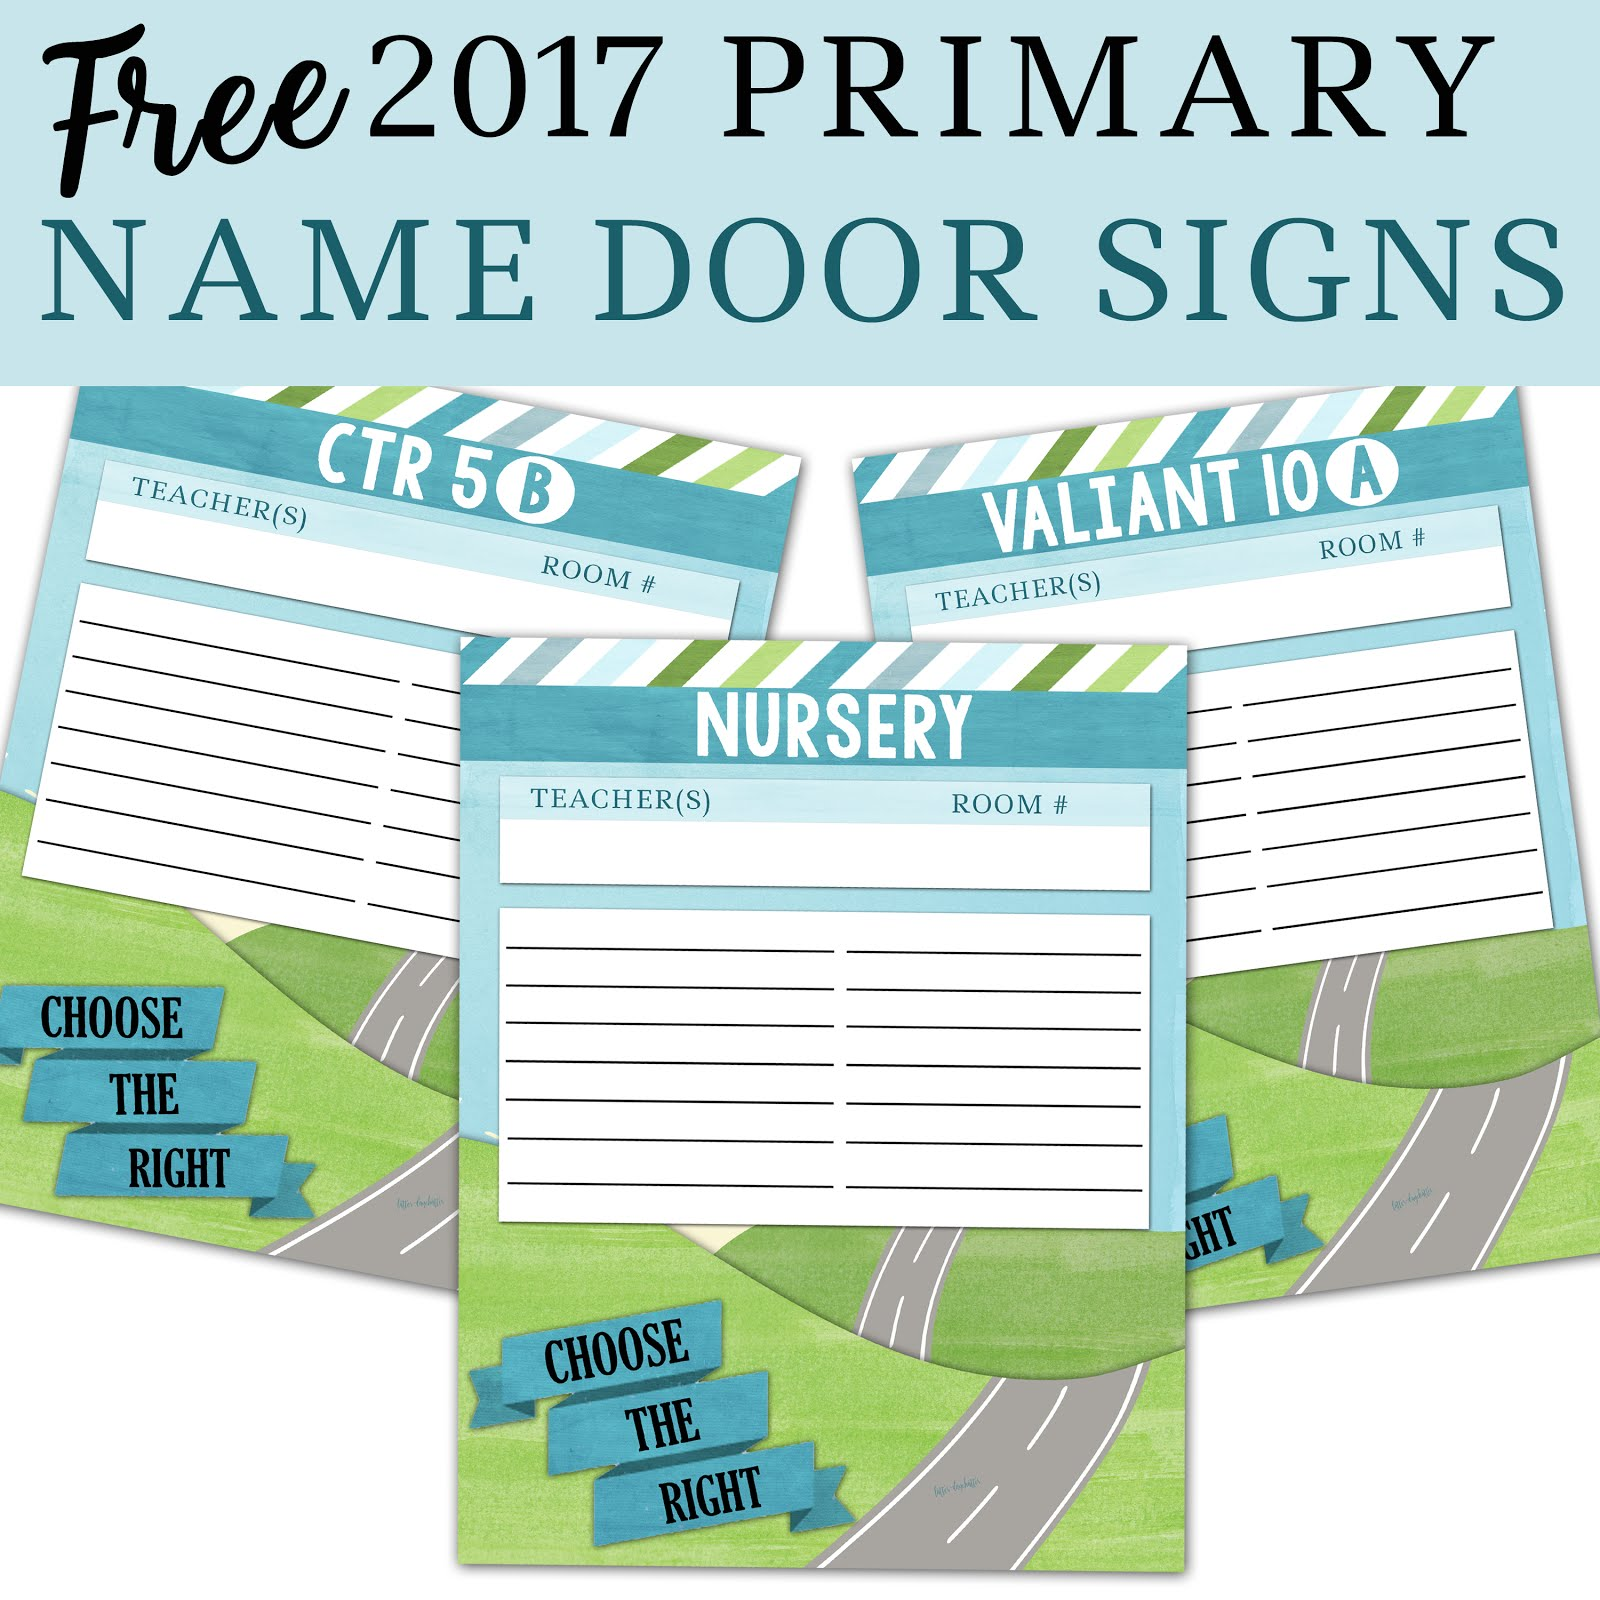 Latterday Chatter 2017 Primary Classroom Name Door Signs. Basketball Uk Signs. Parkinson's Disease Signs. Bingo Signs Of Stroke. Pretty Little Liars Signs